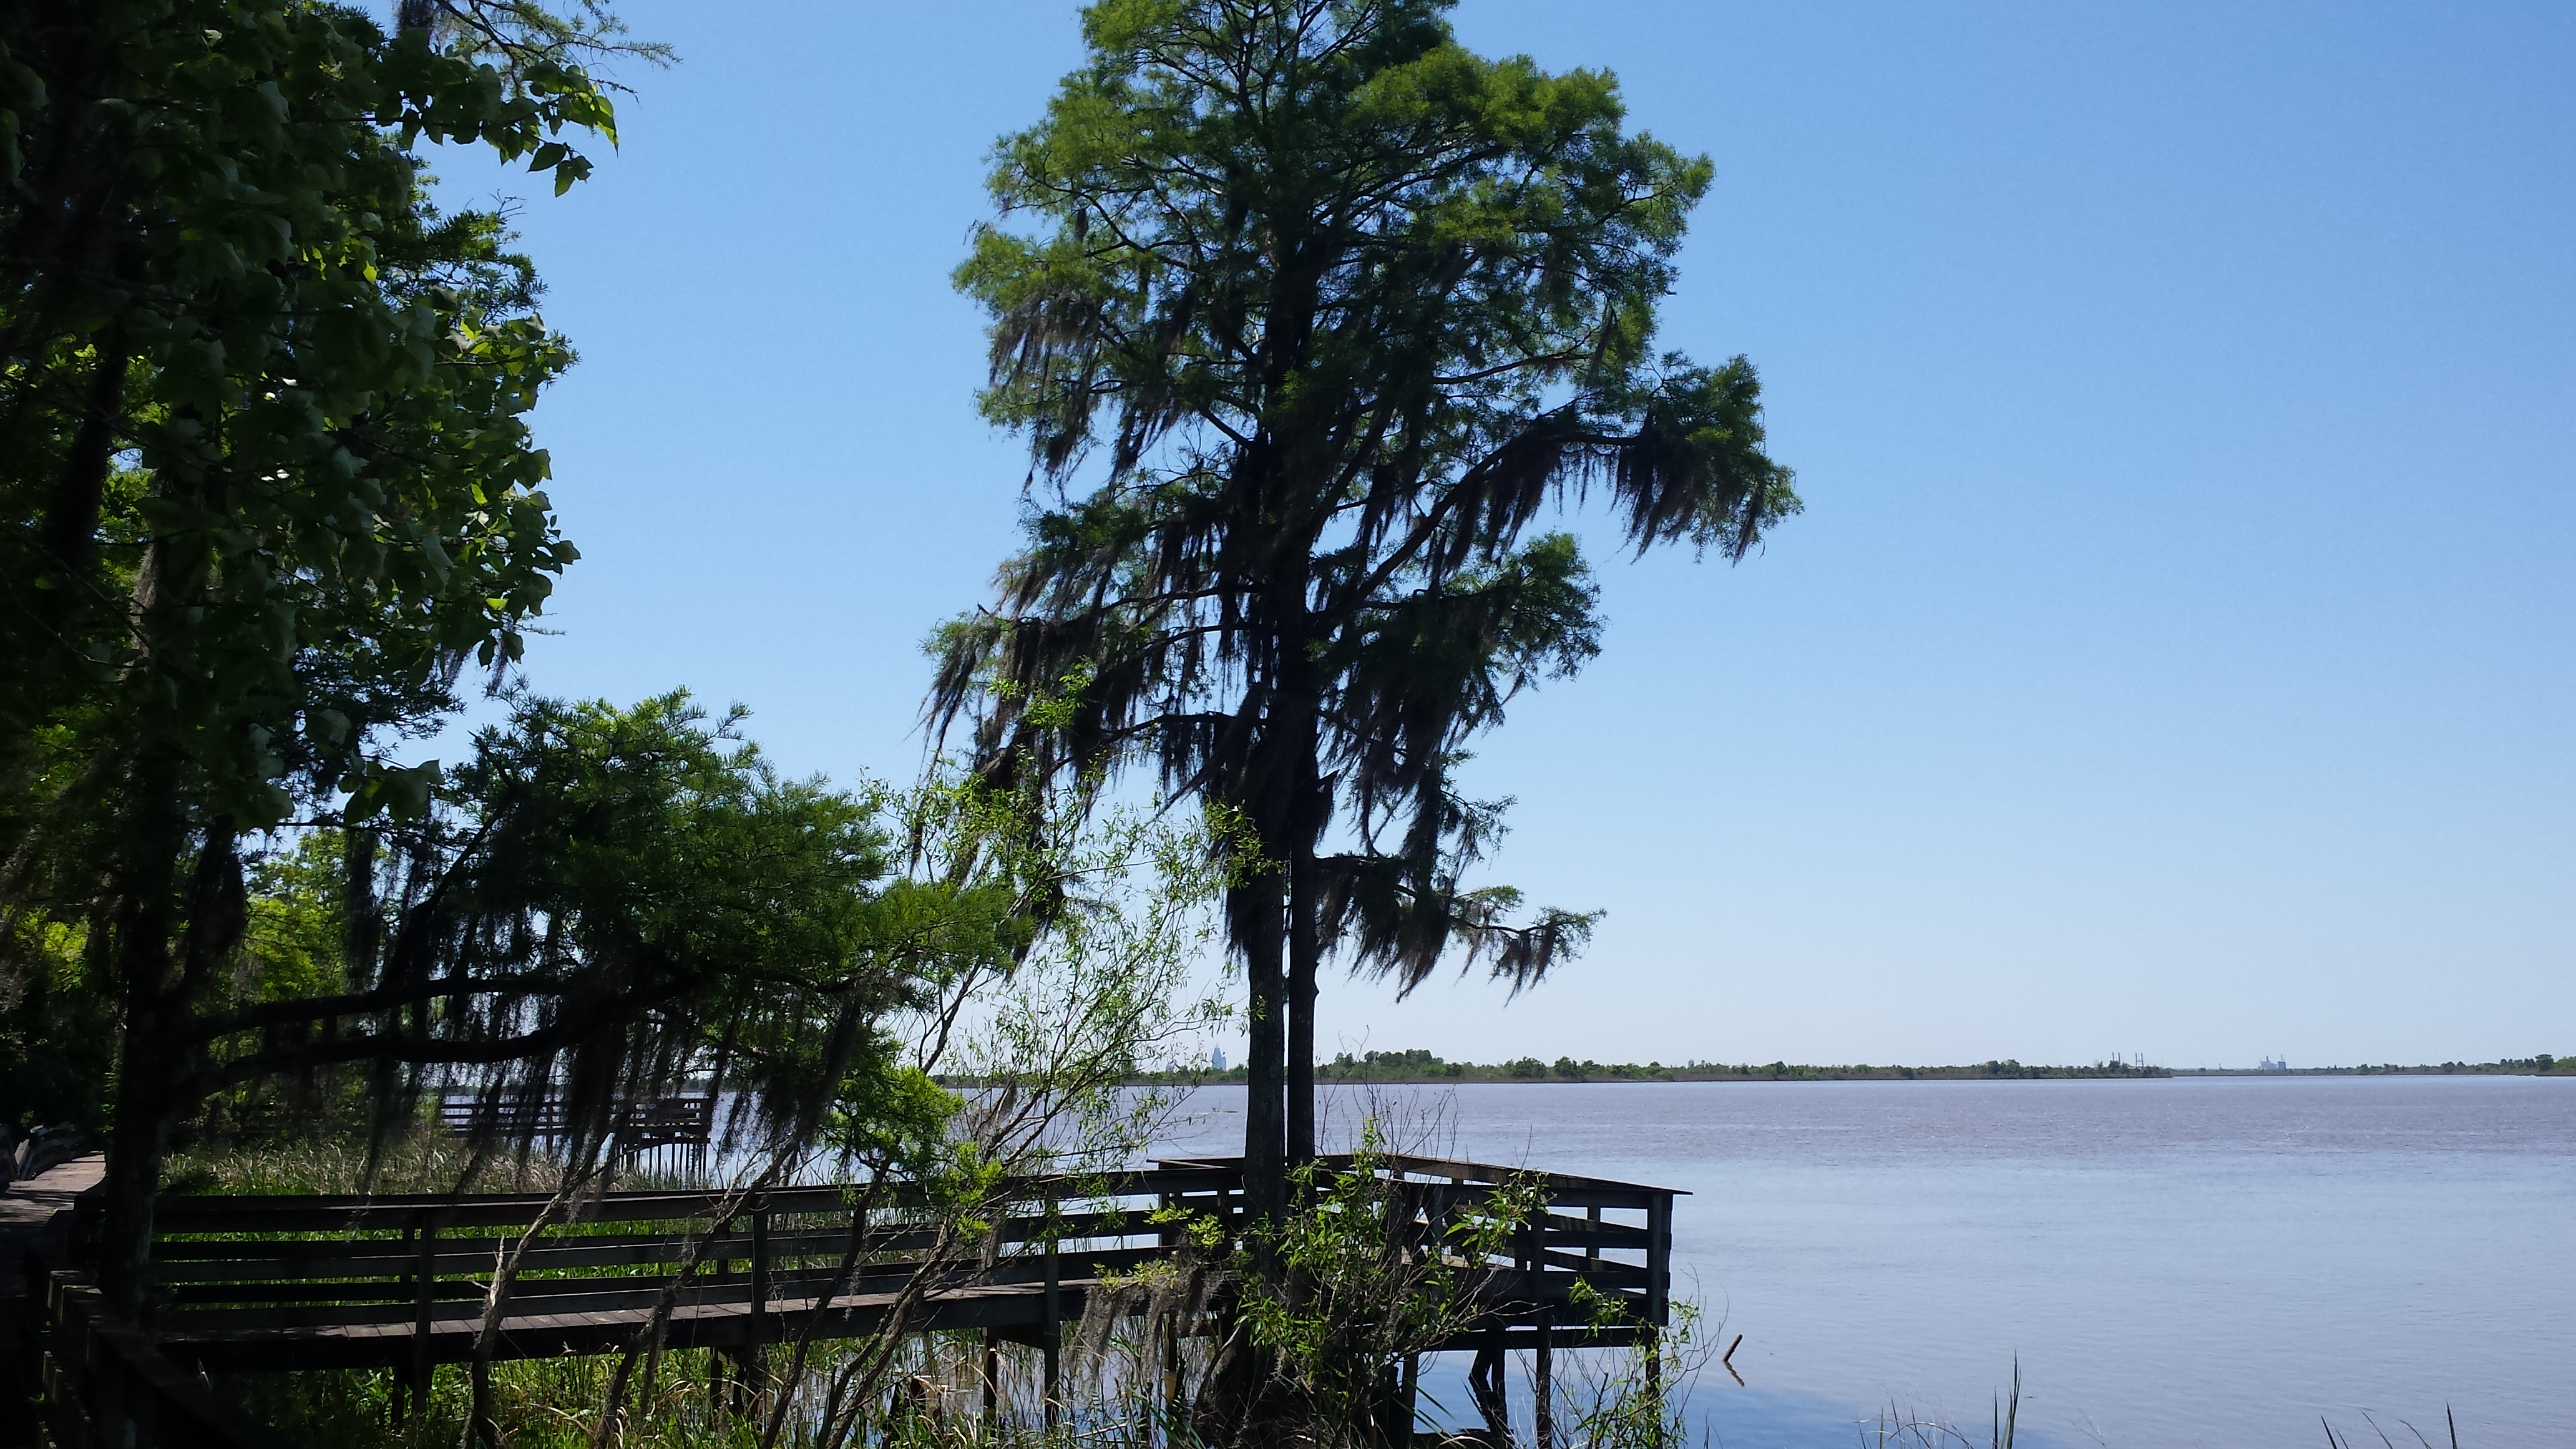 Historic Blakeley State Park